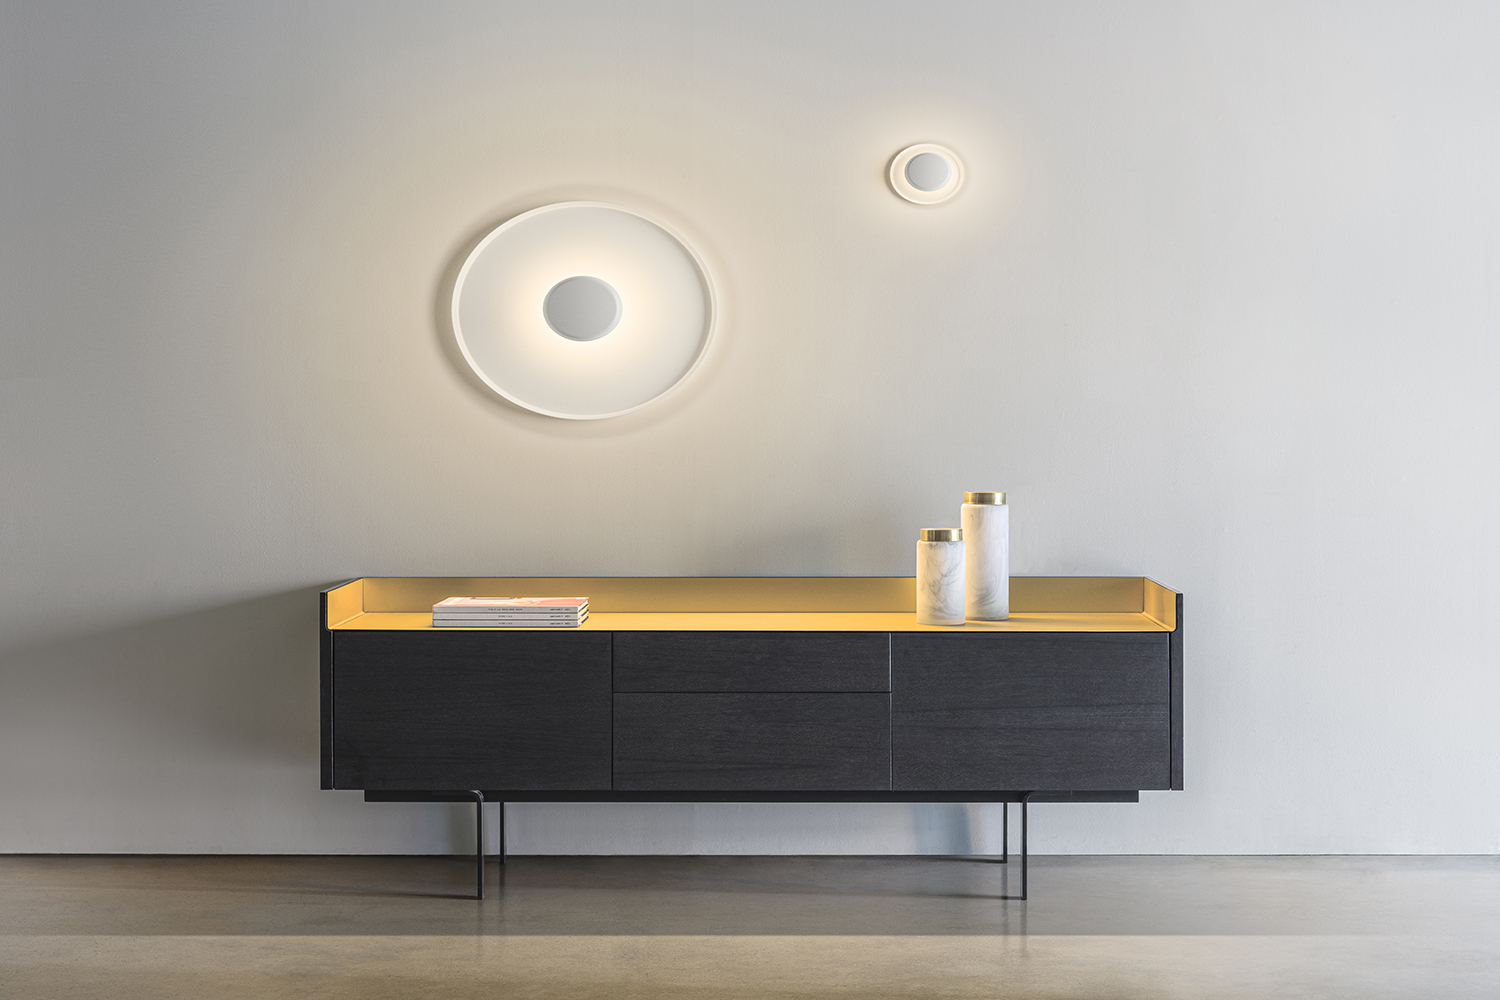 More information of TOP wall lamp - Vibia